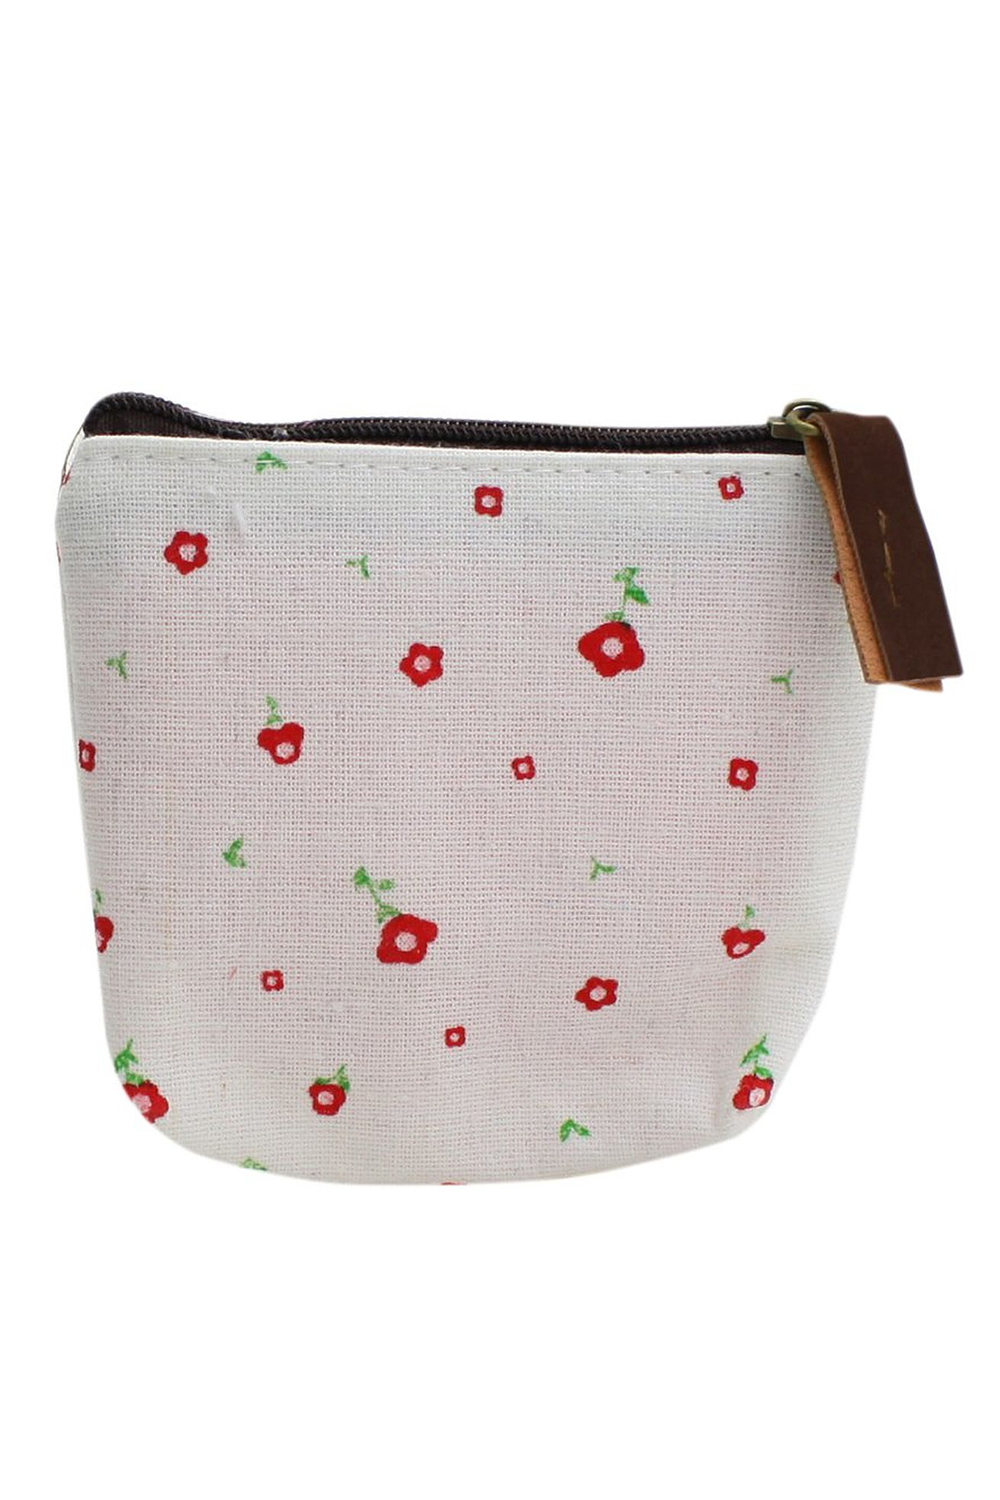 Lady Small Canvas Purse Wallet Coin(white)